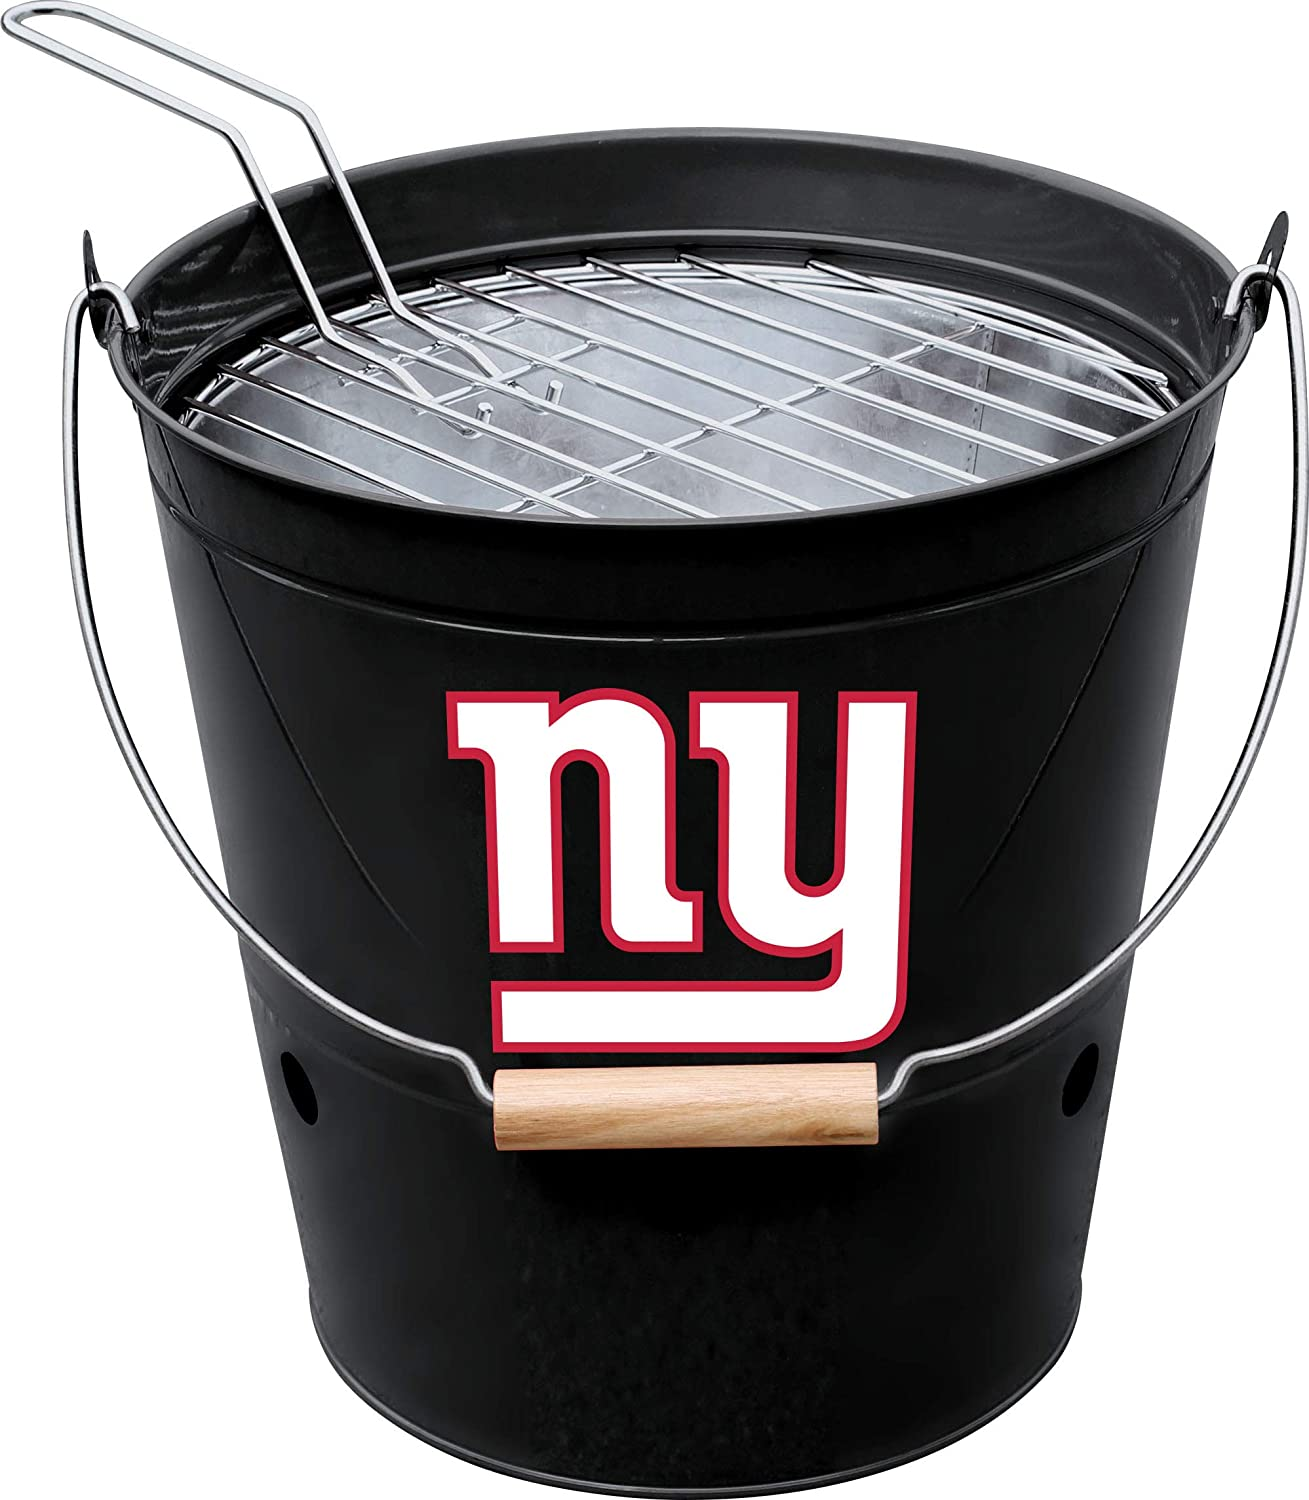 Imperial Officially Licensed NFL Merchandise: Bucket Grill